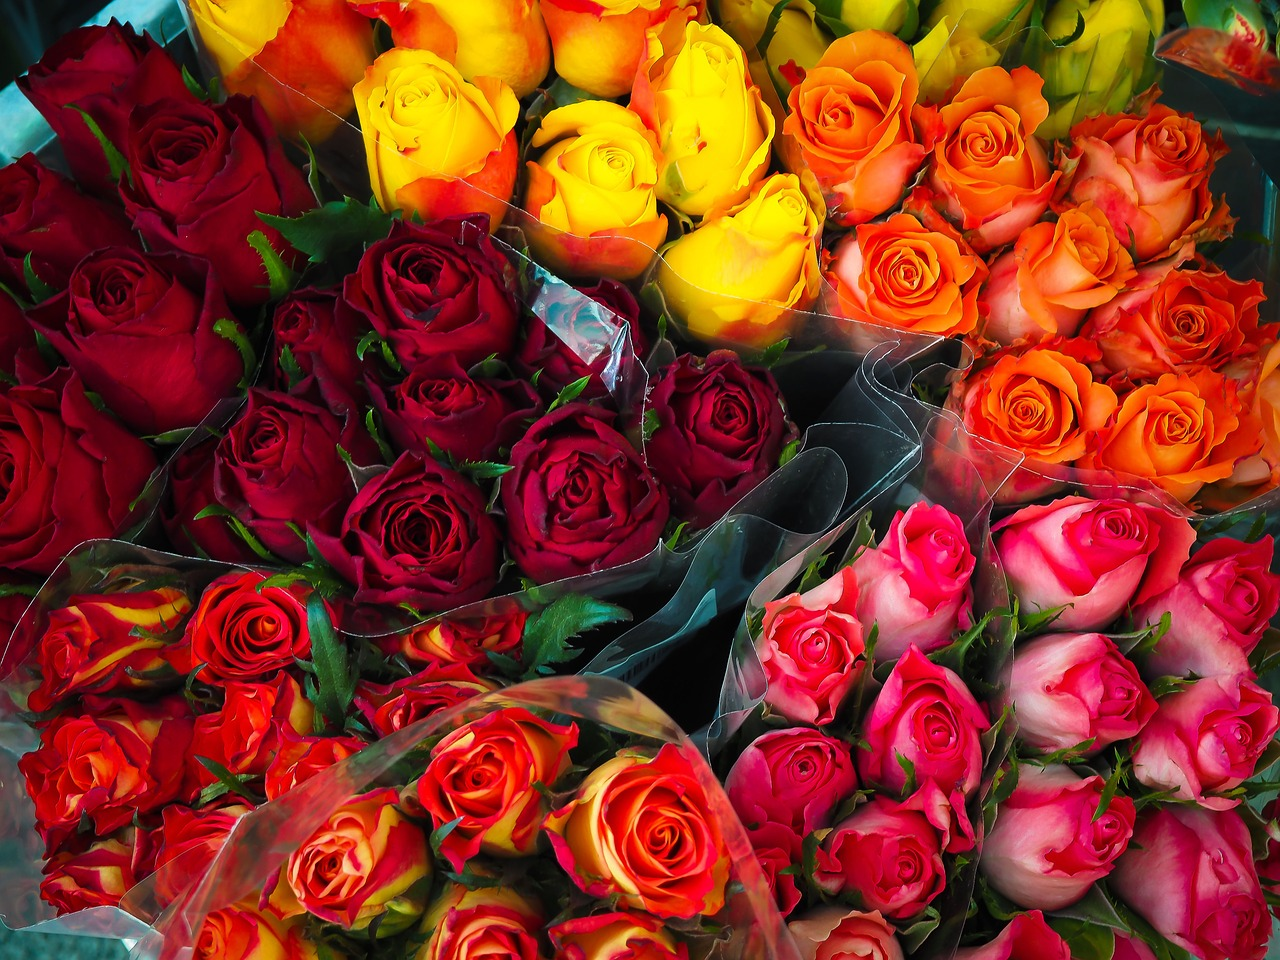 Give Colored Roses to say a special meaning | Cedar Brook Garden ...